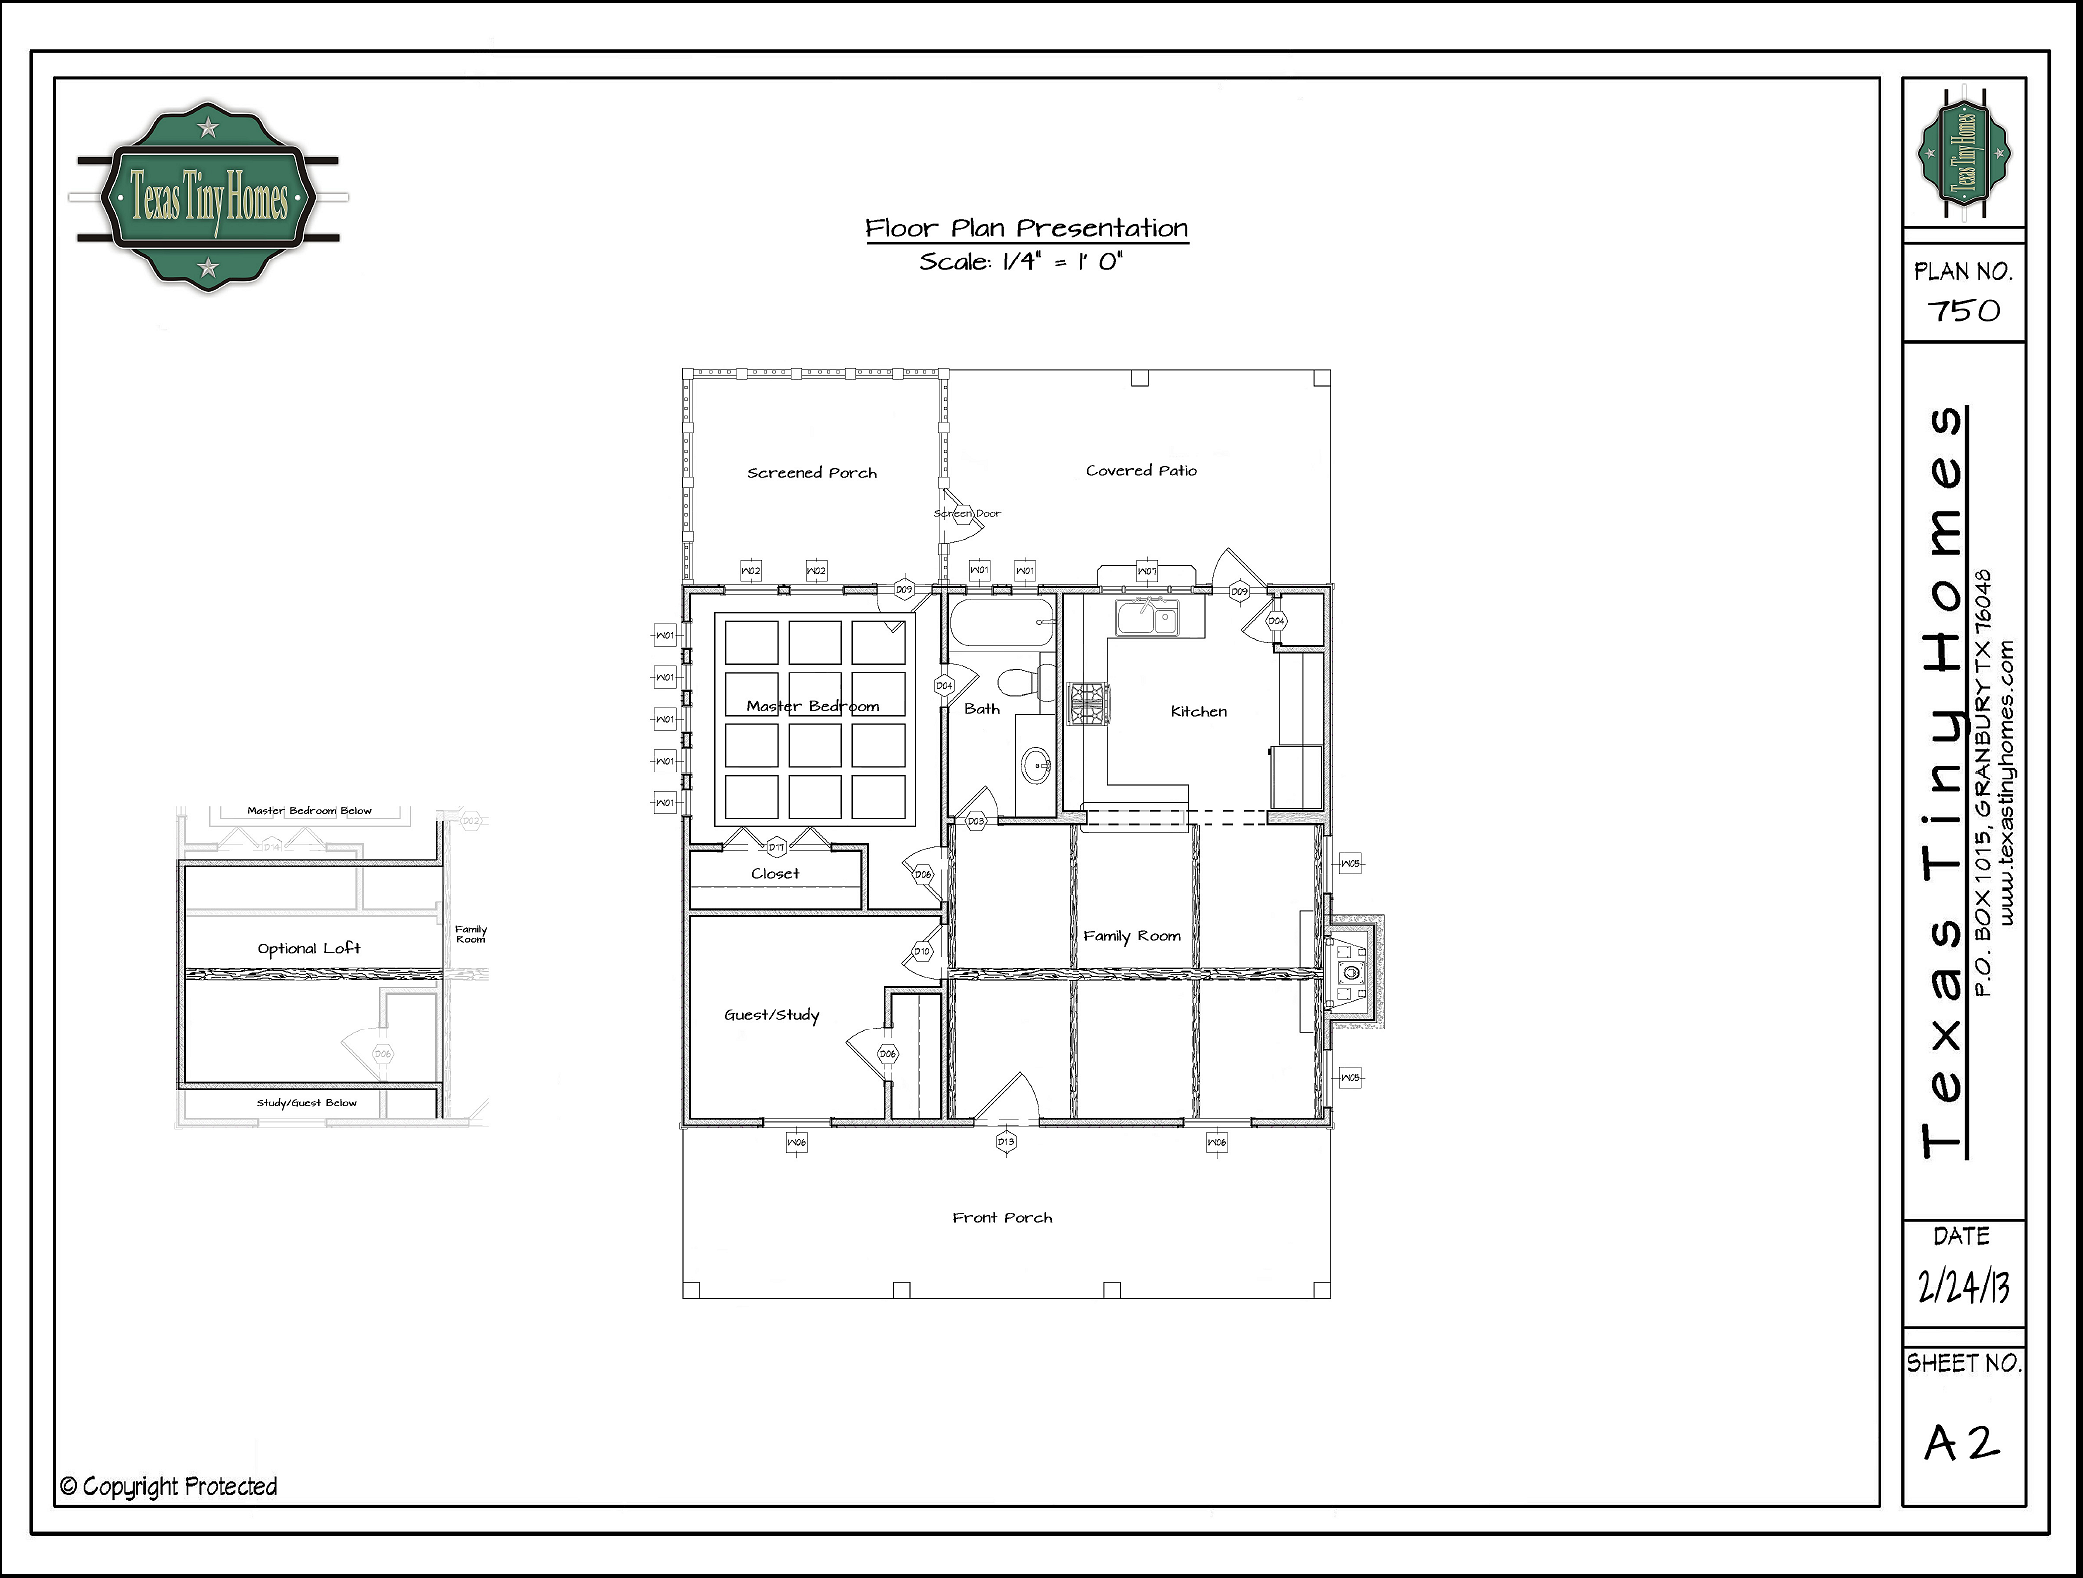 Texas tiny homes plan 750 - Home design sheets ...